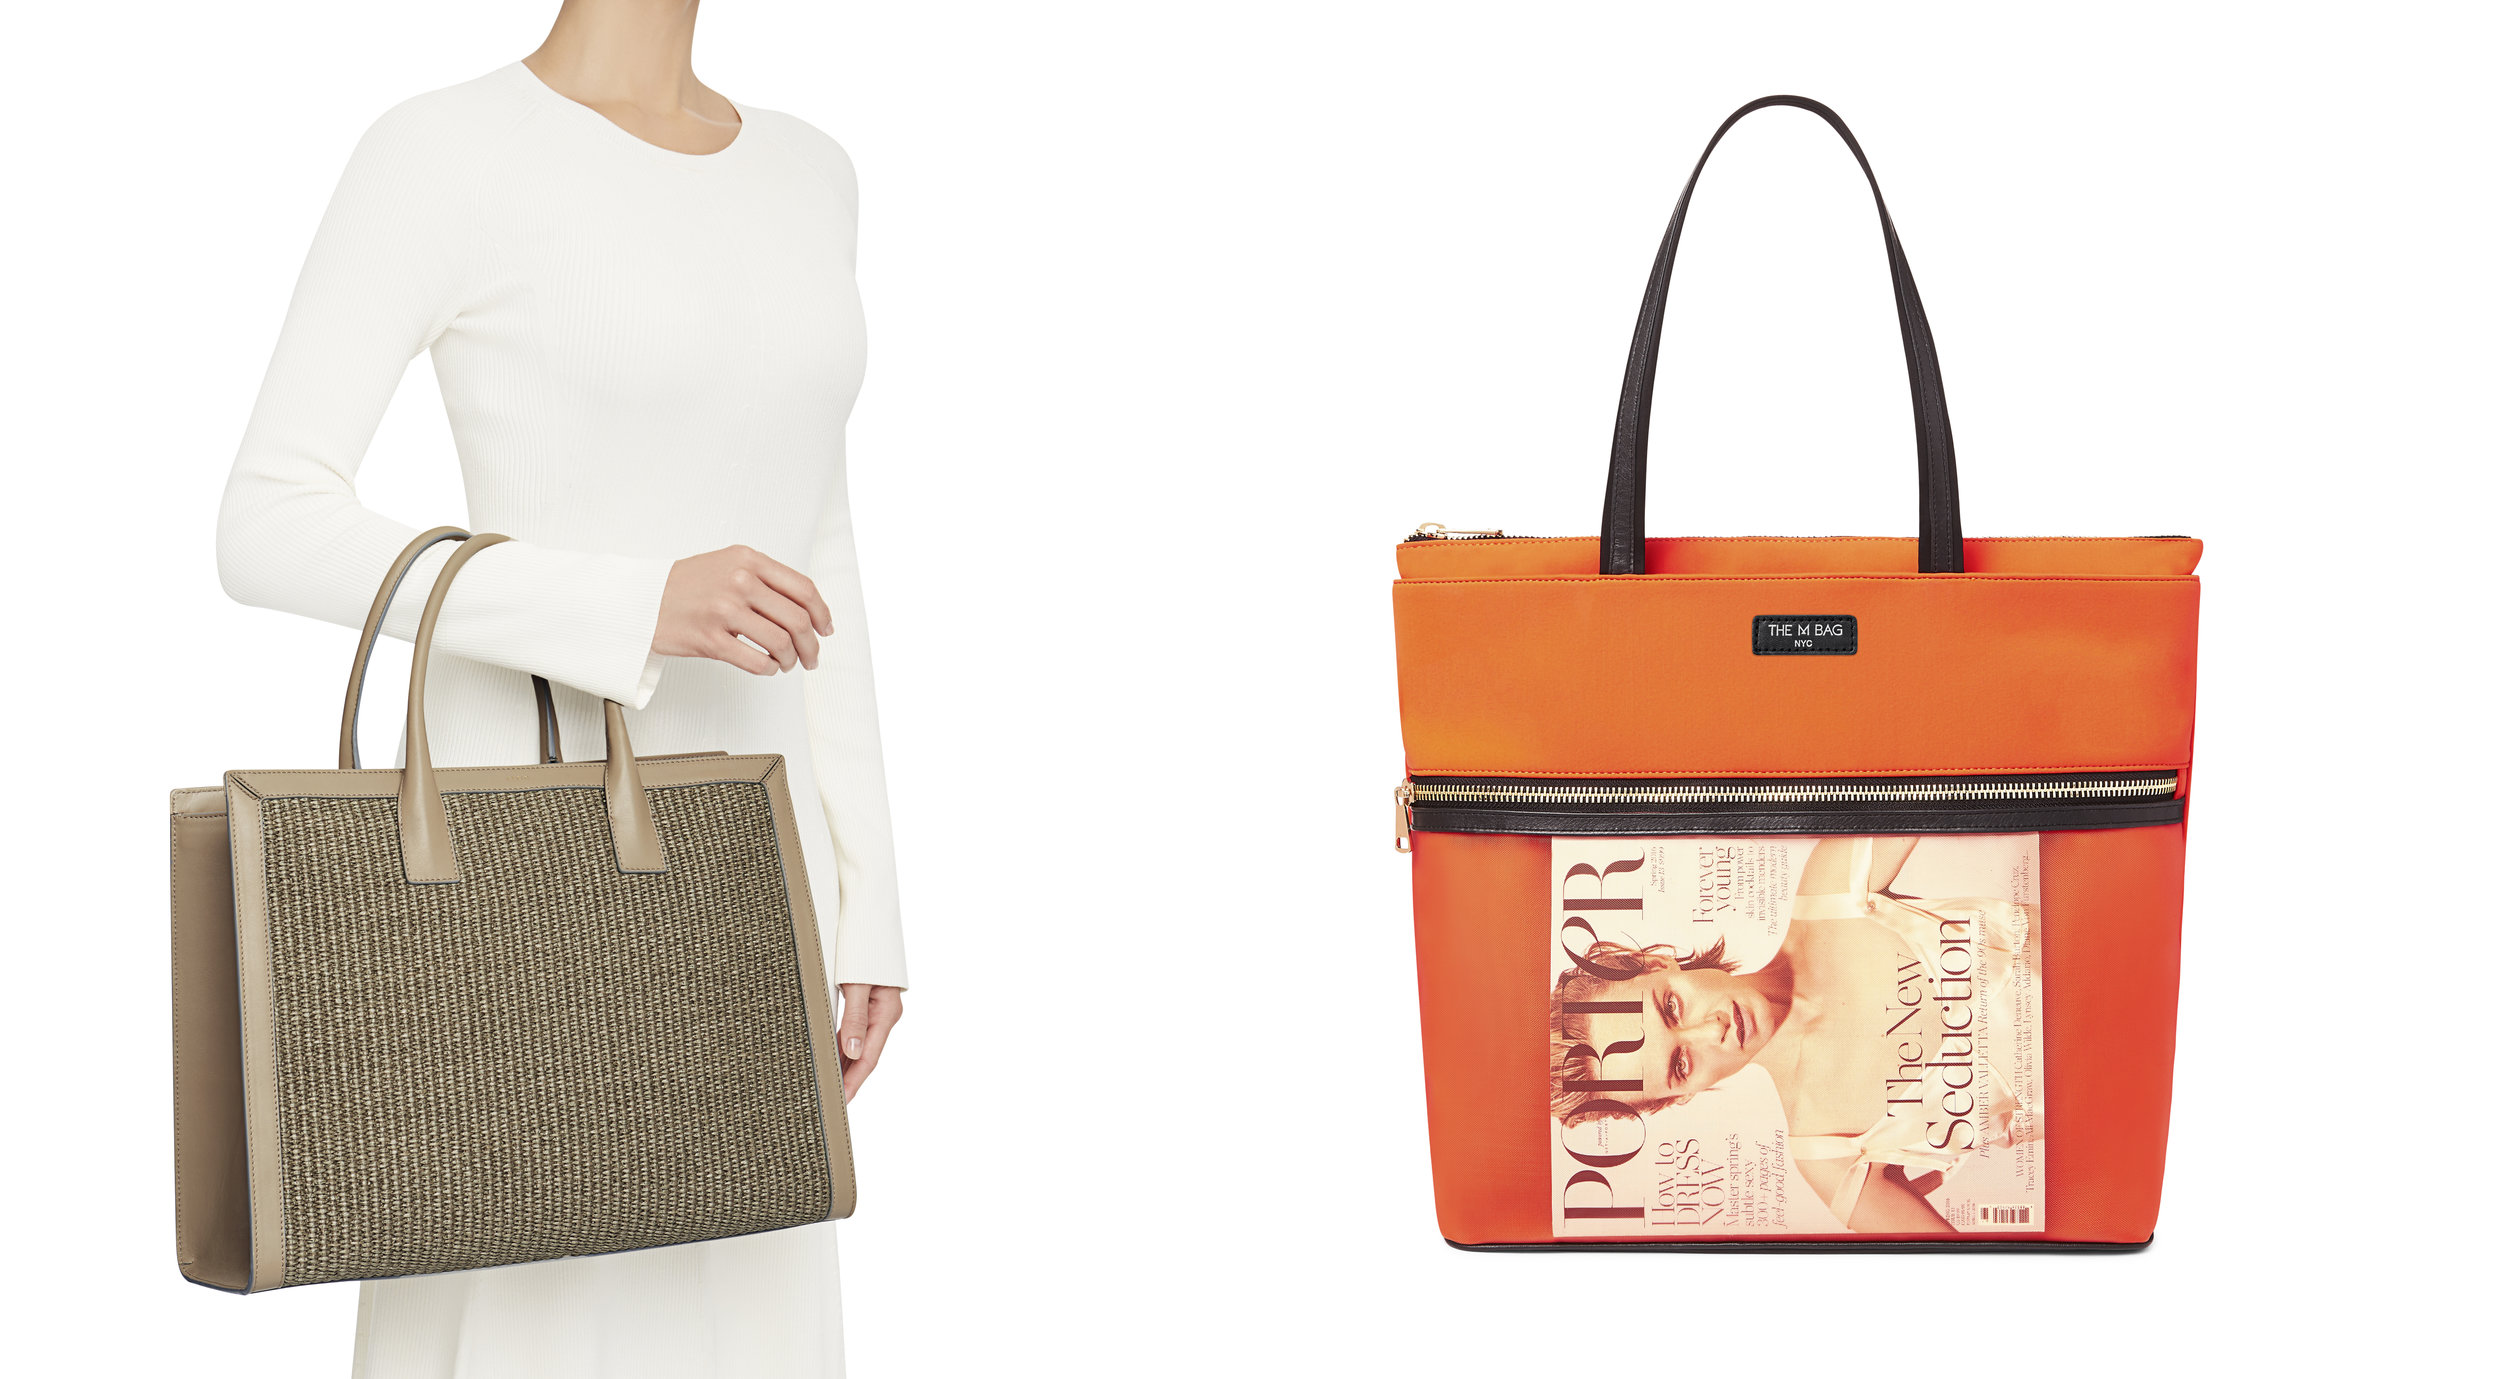 Using models or props can be instrumental in giving context or scale to a product image, as well as adding some personality, as seen in this e-commerce imagery from  The M Bag